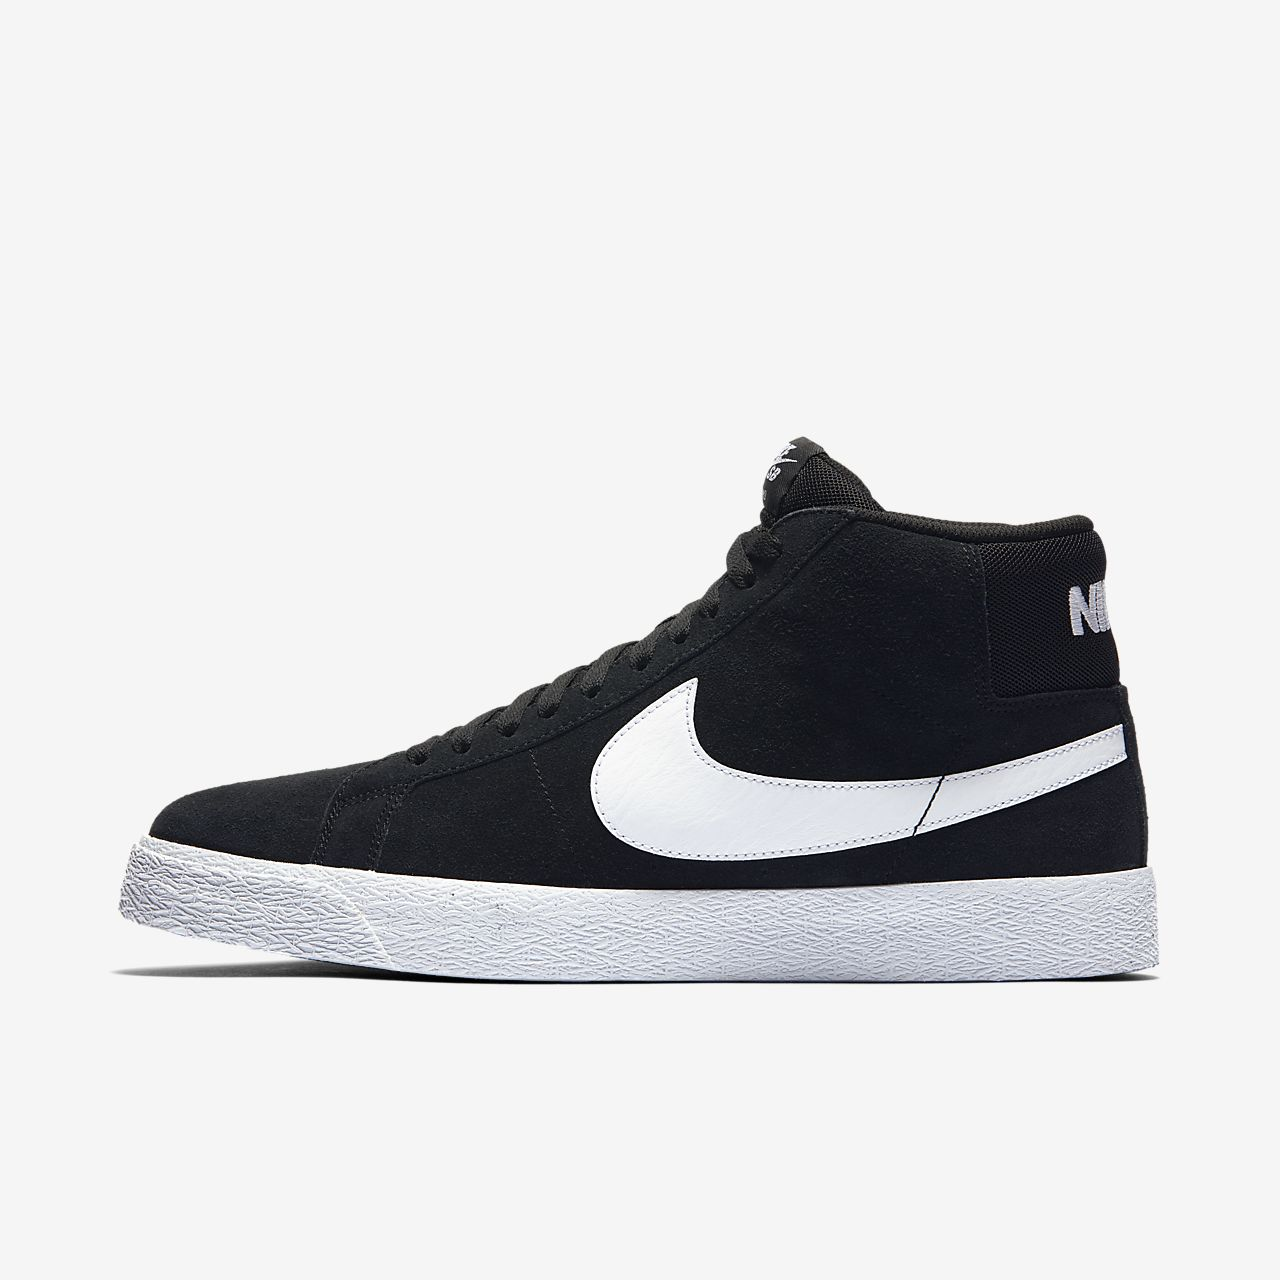 best sneakers cd25d 74eff ... Nike SB Zoom Blazer Mid Skate Shoe